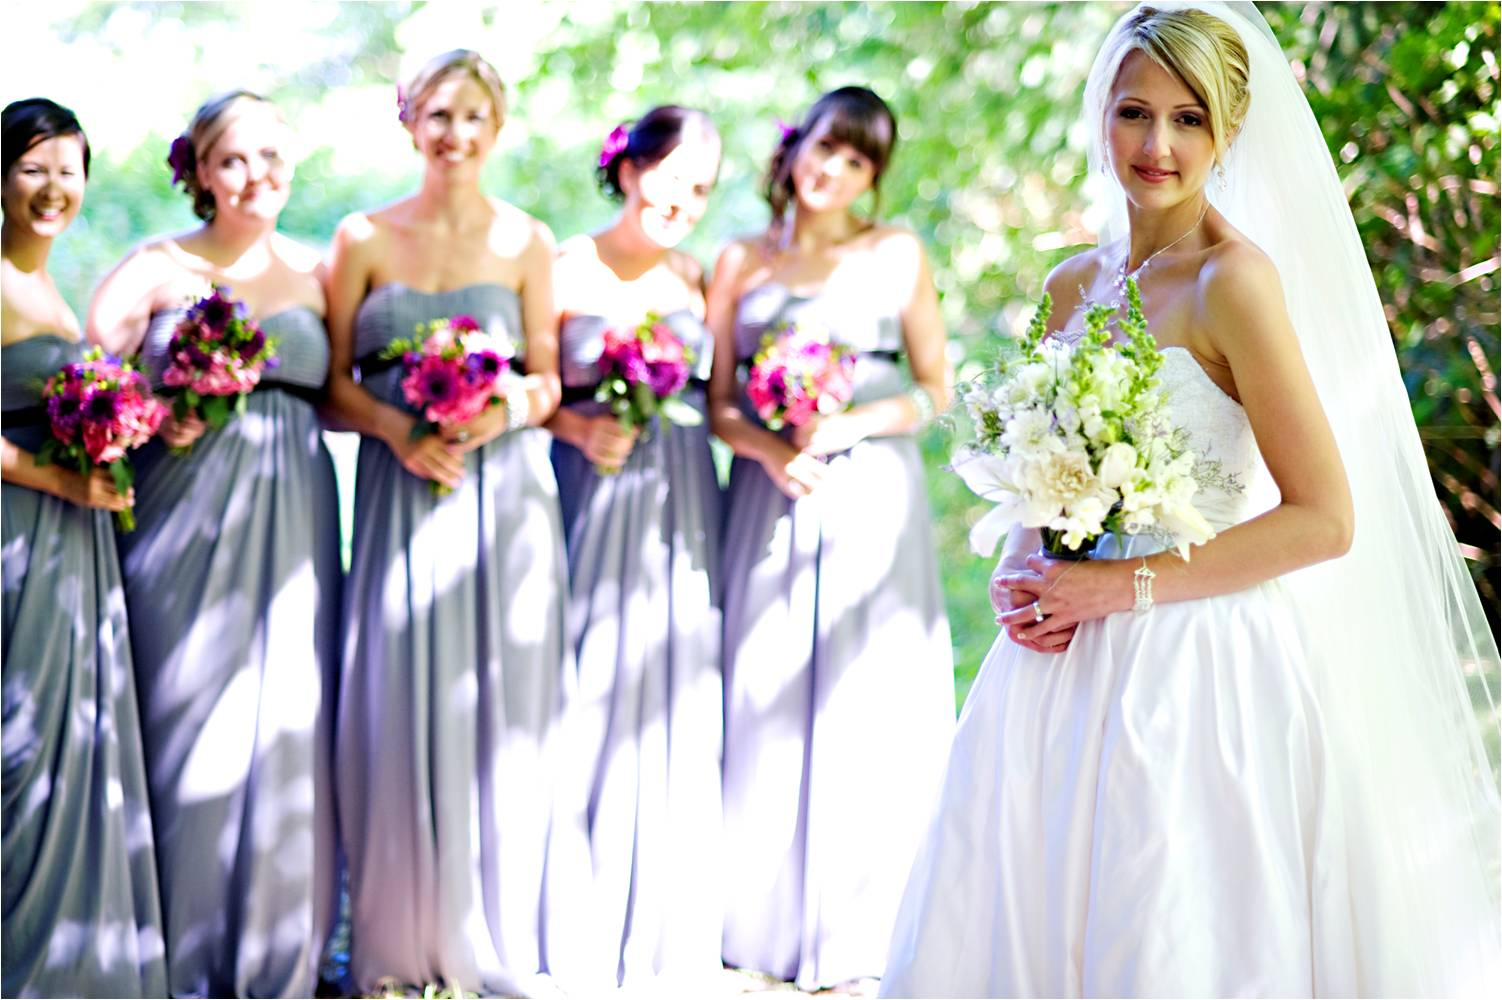 2011-outdoor-wedding-casual-chic-colorful-wedding-flowers-white-wedding-dress.original